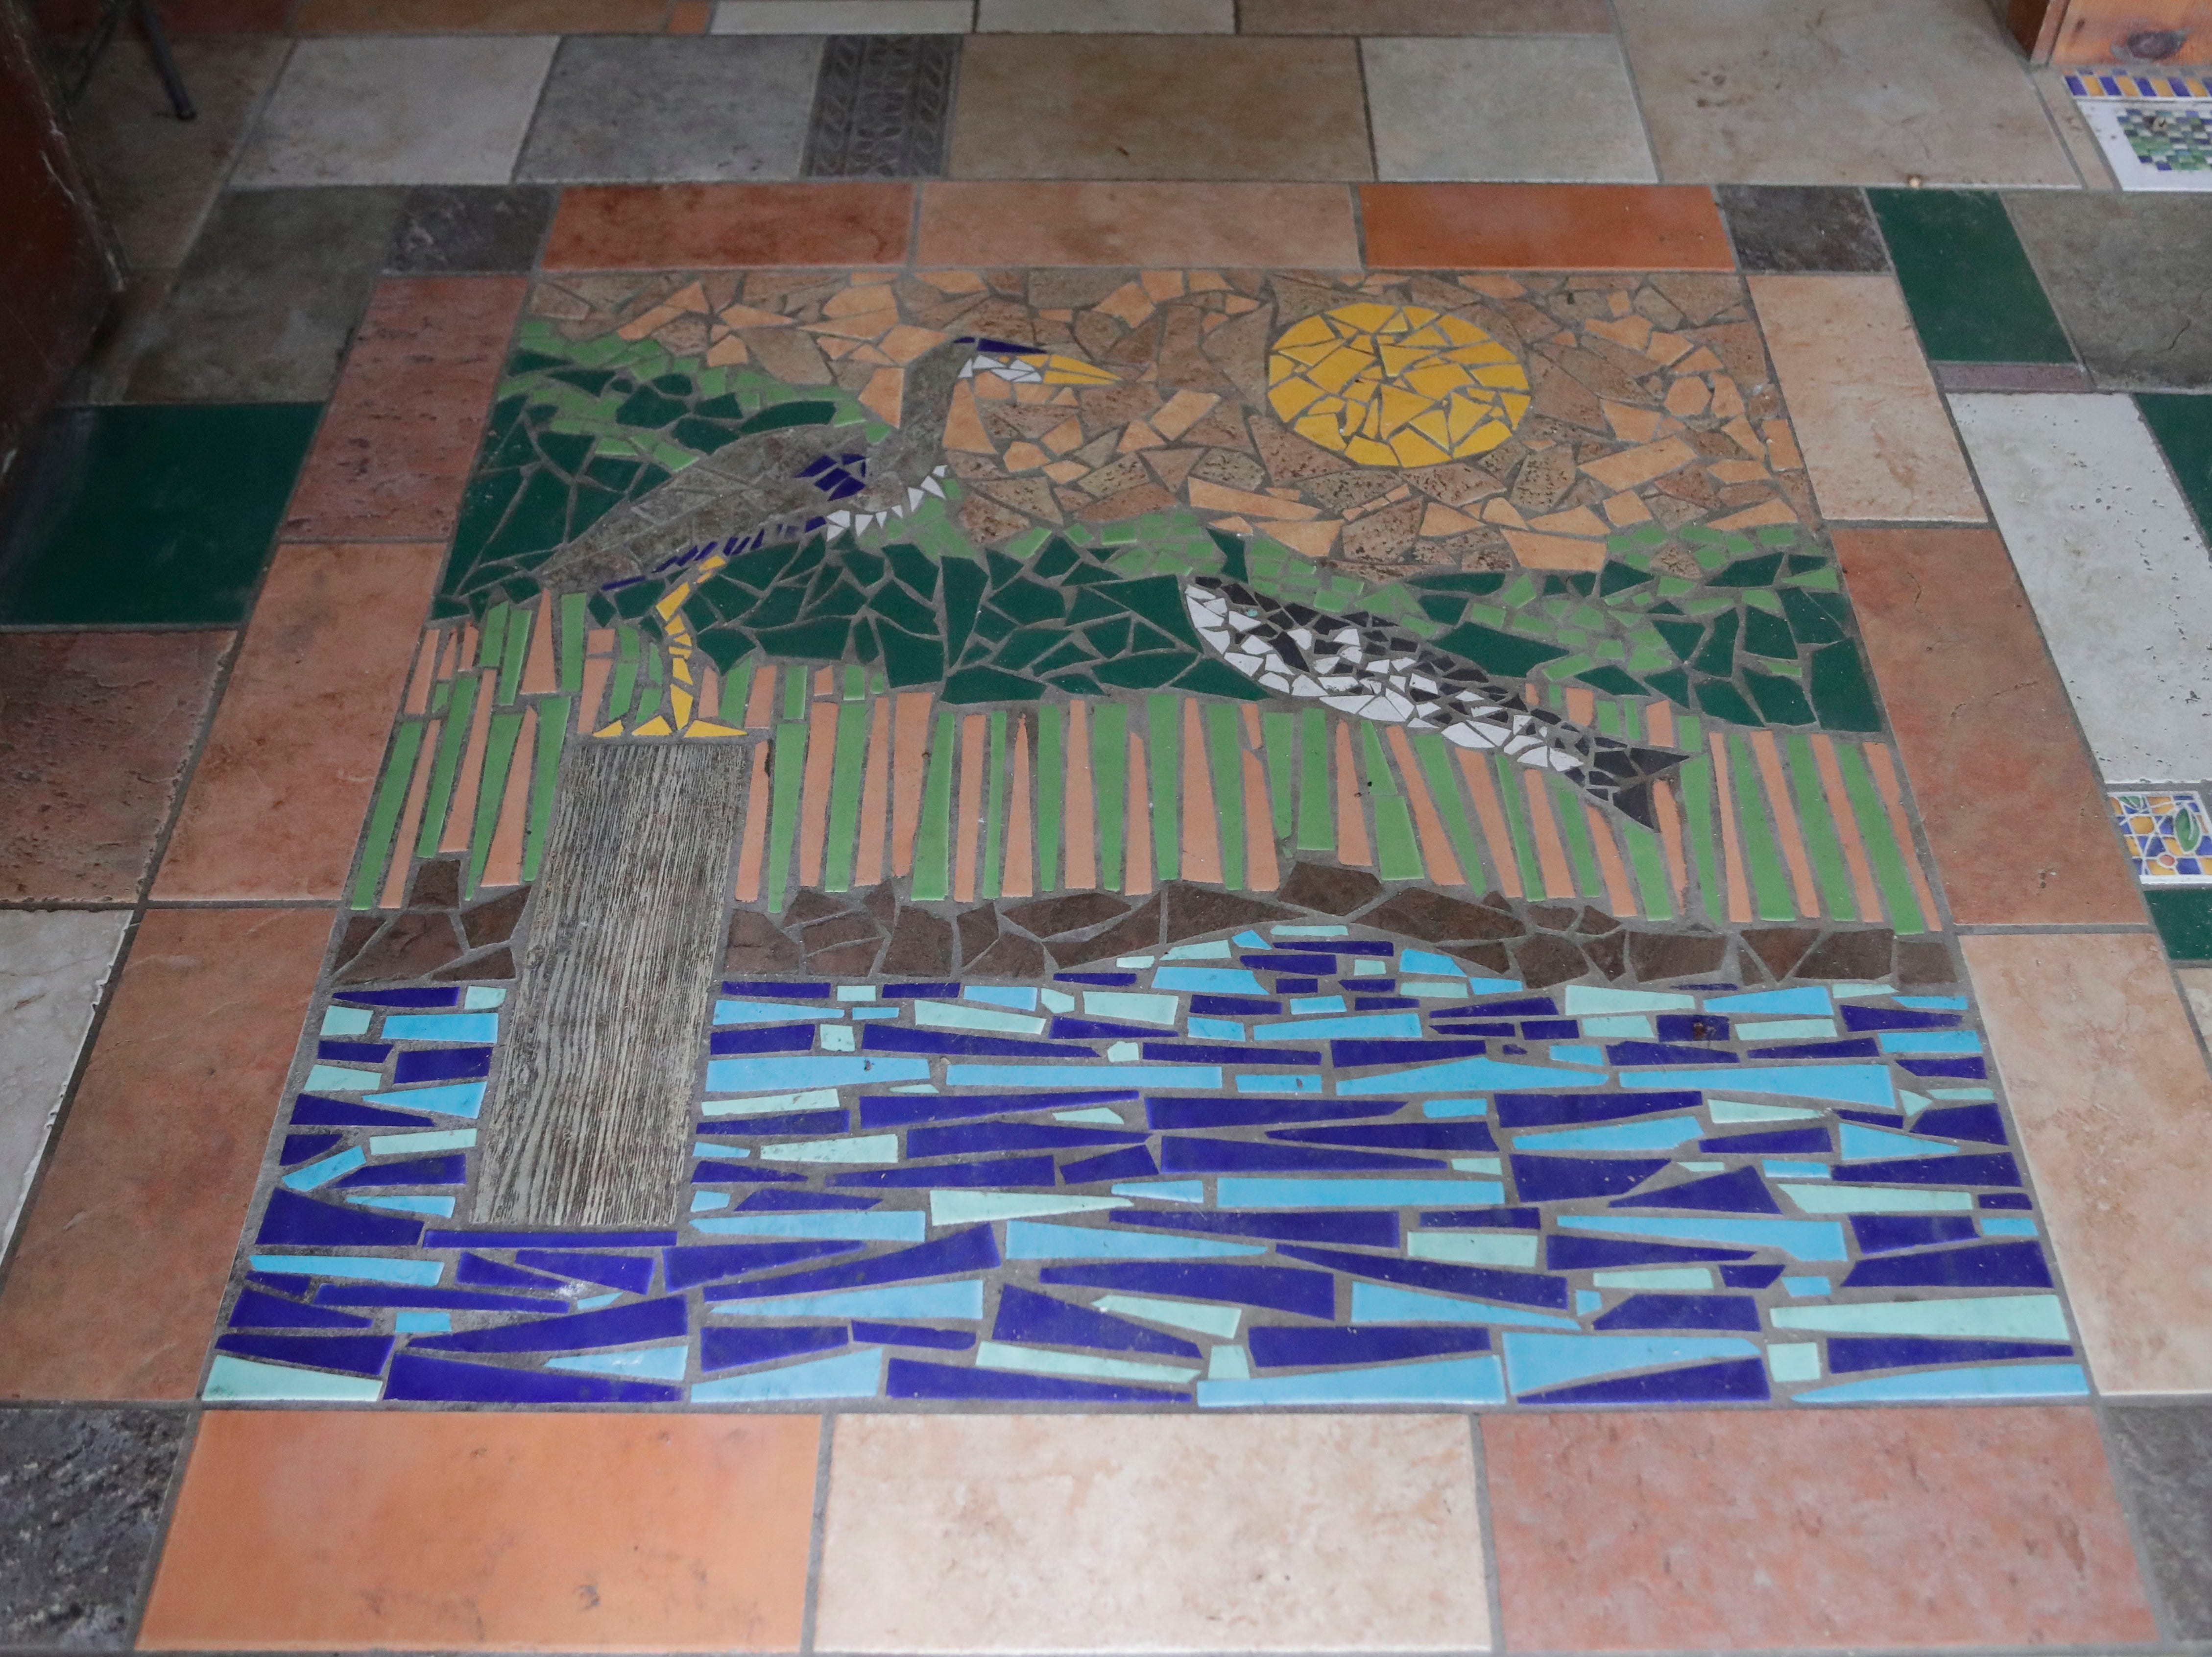 A tile mural in the entrance of the Spring Creek Restaurant, Tuesday, Feb. 5, 2019.